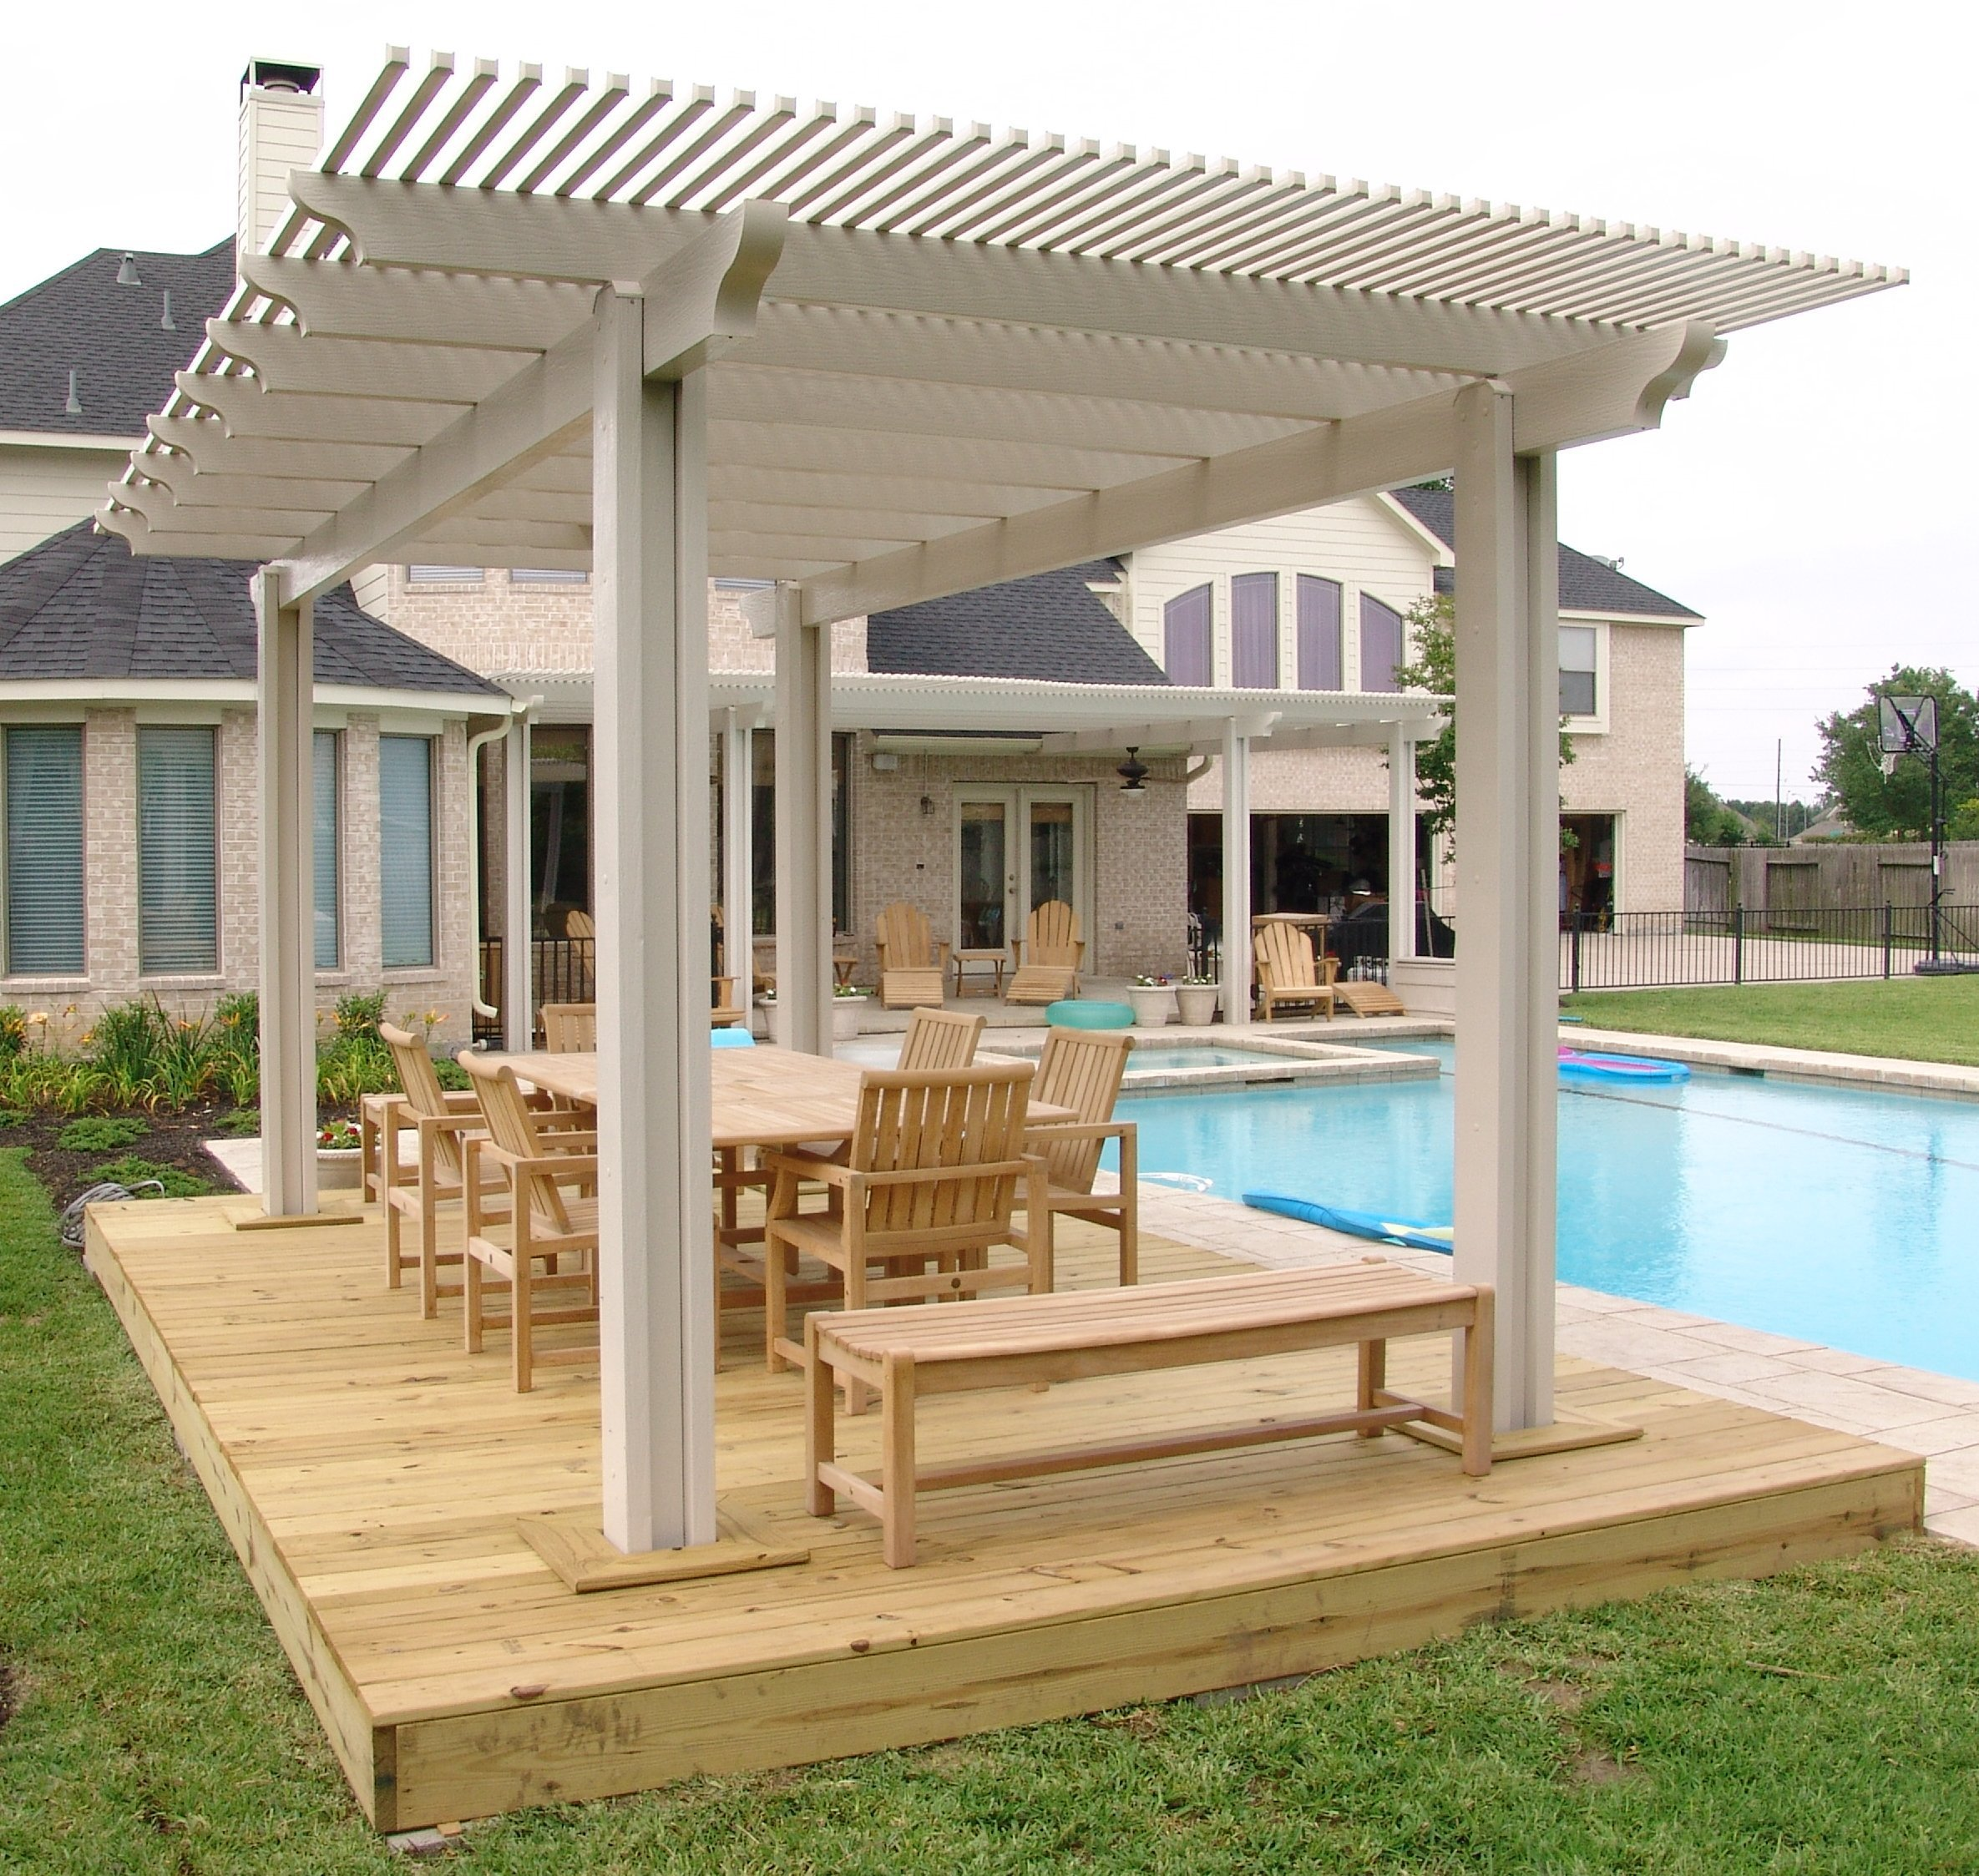 Wood patio covers in texas for Patio cover ideas designs